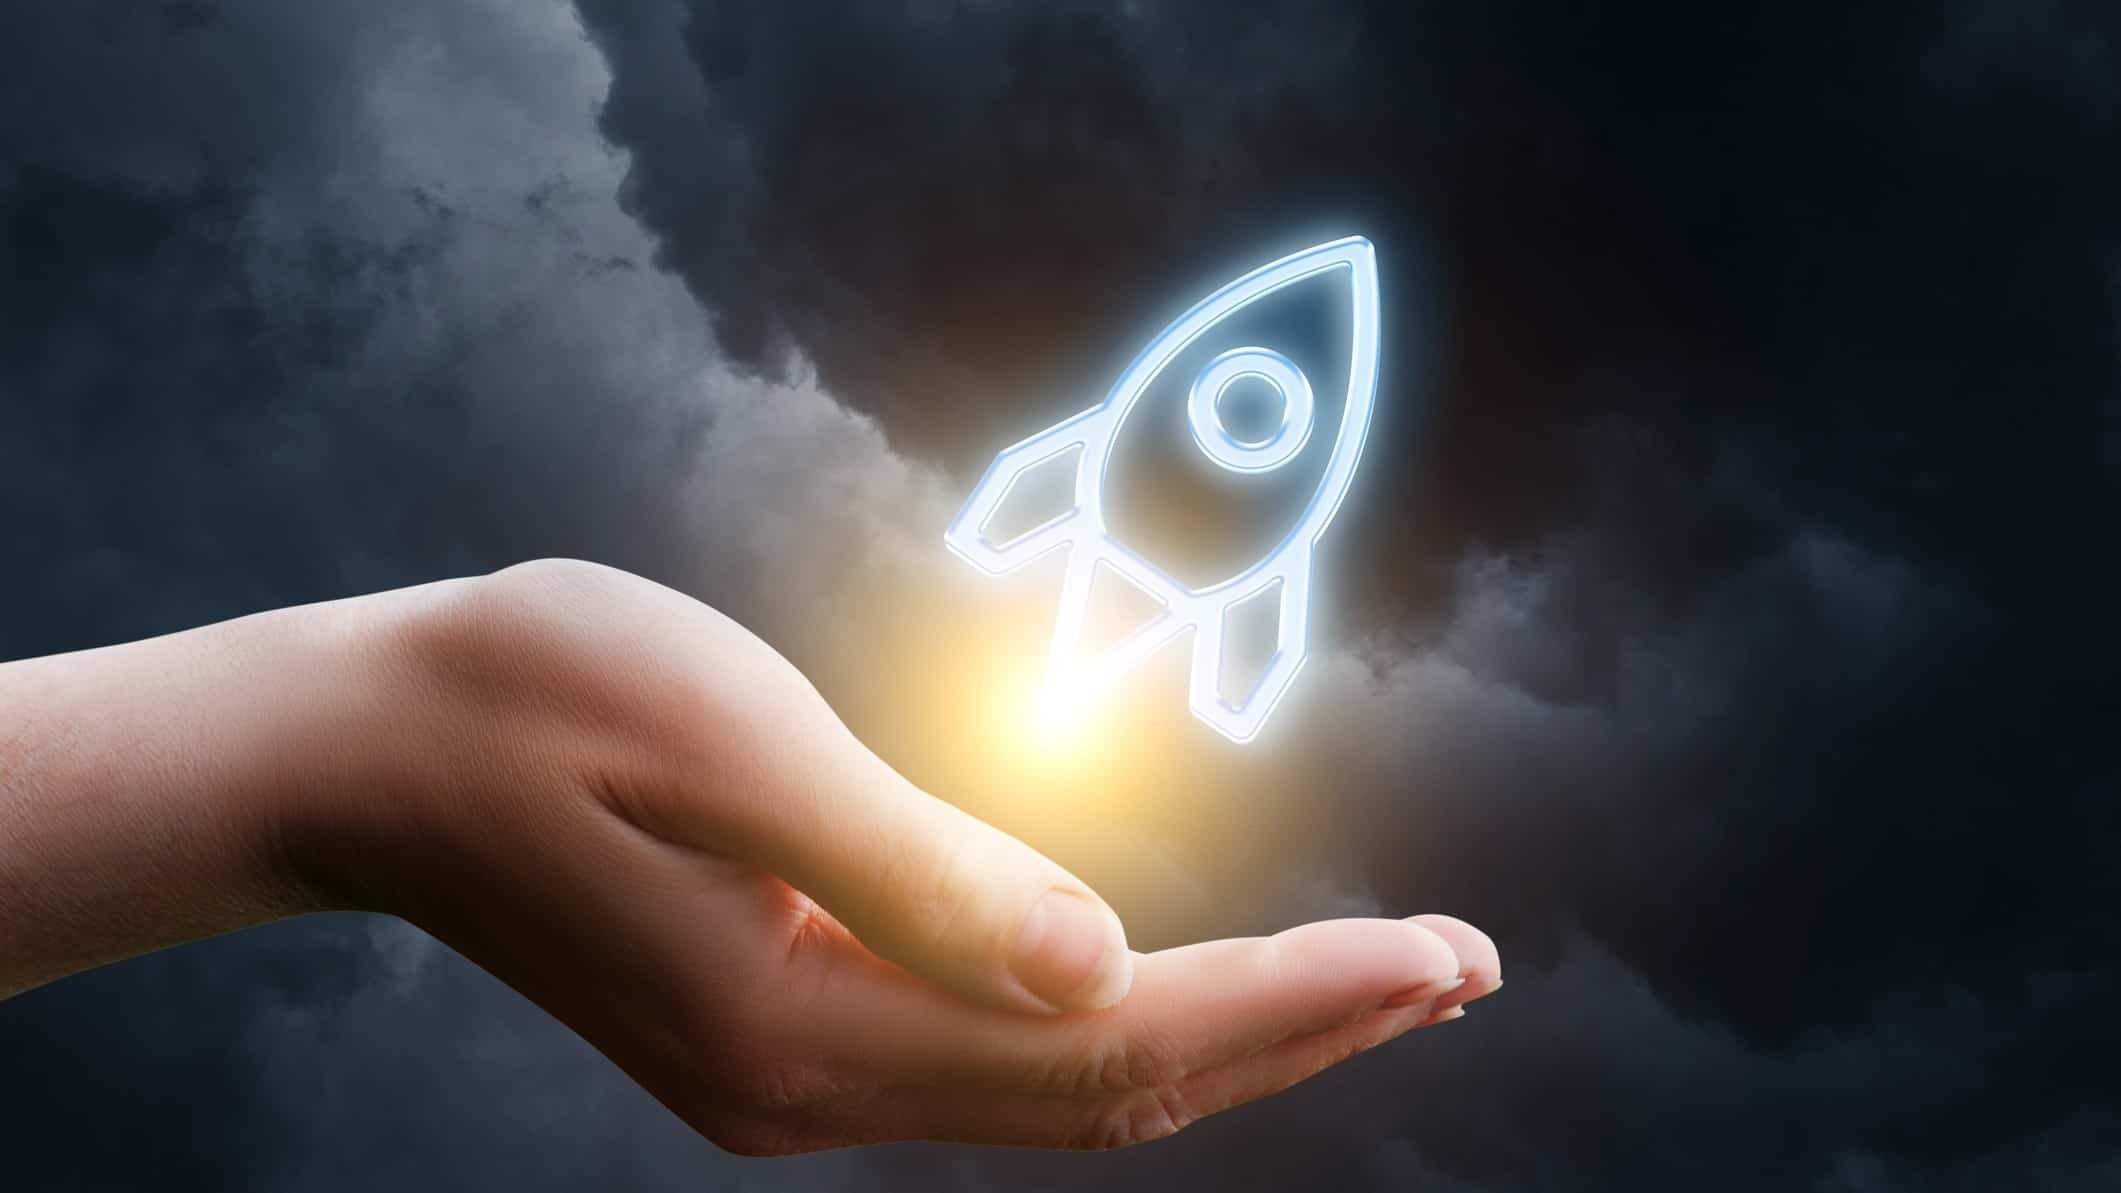 rise in asx tech share price represented by digitised rocket shooting out of person's hand